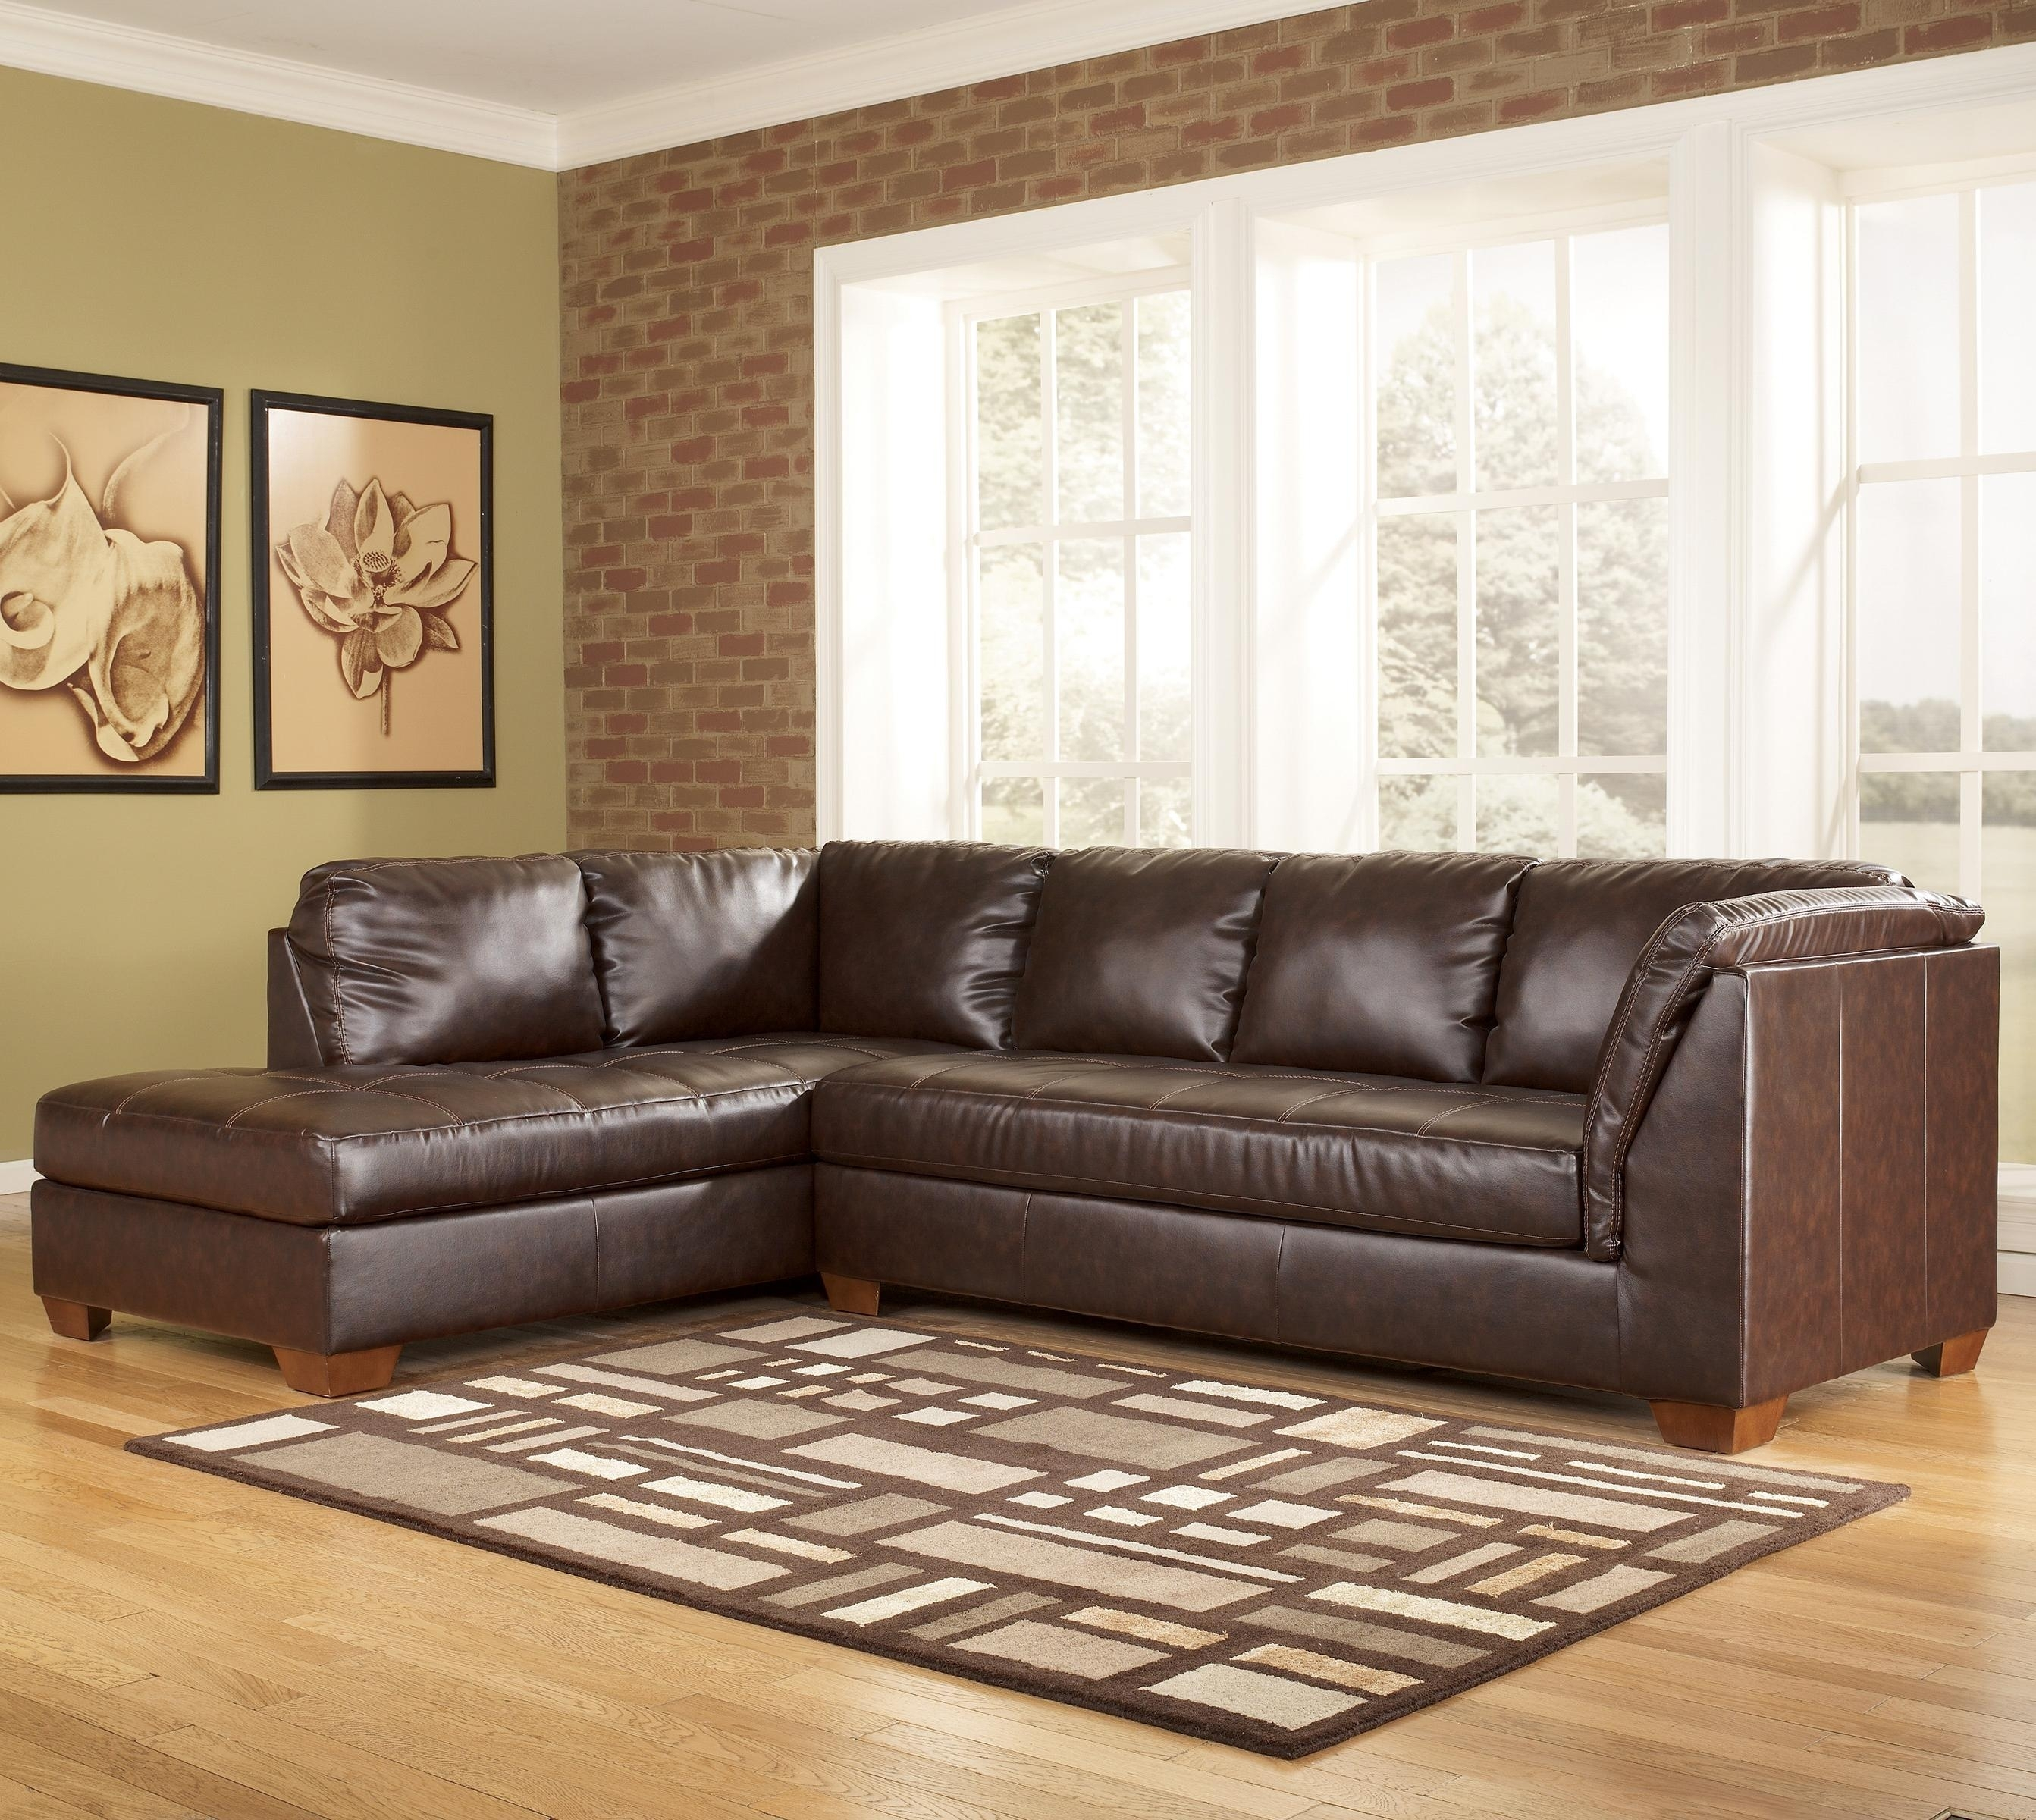 Signature Designashley Fairplay Durablend® Contemporary throughout Jacksonville Nc Sectional Sofas (Image 9 of 10)